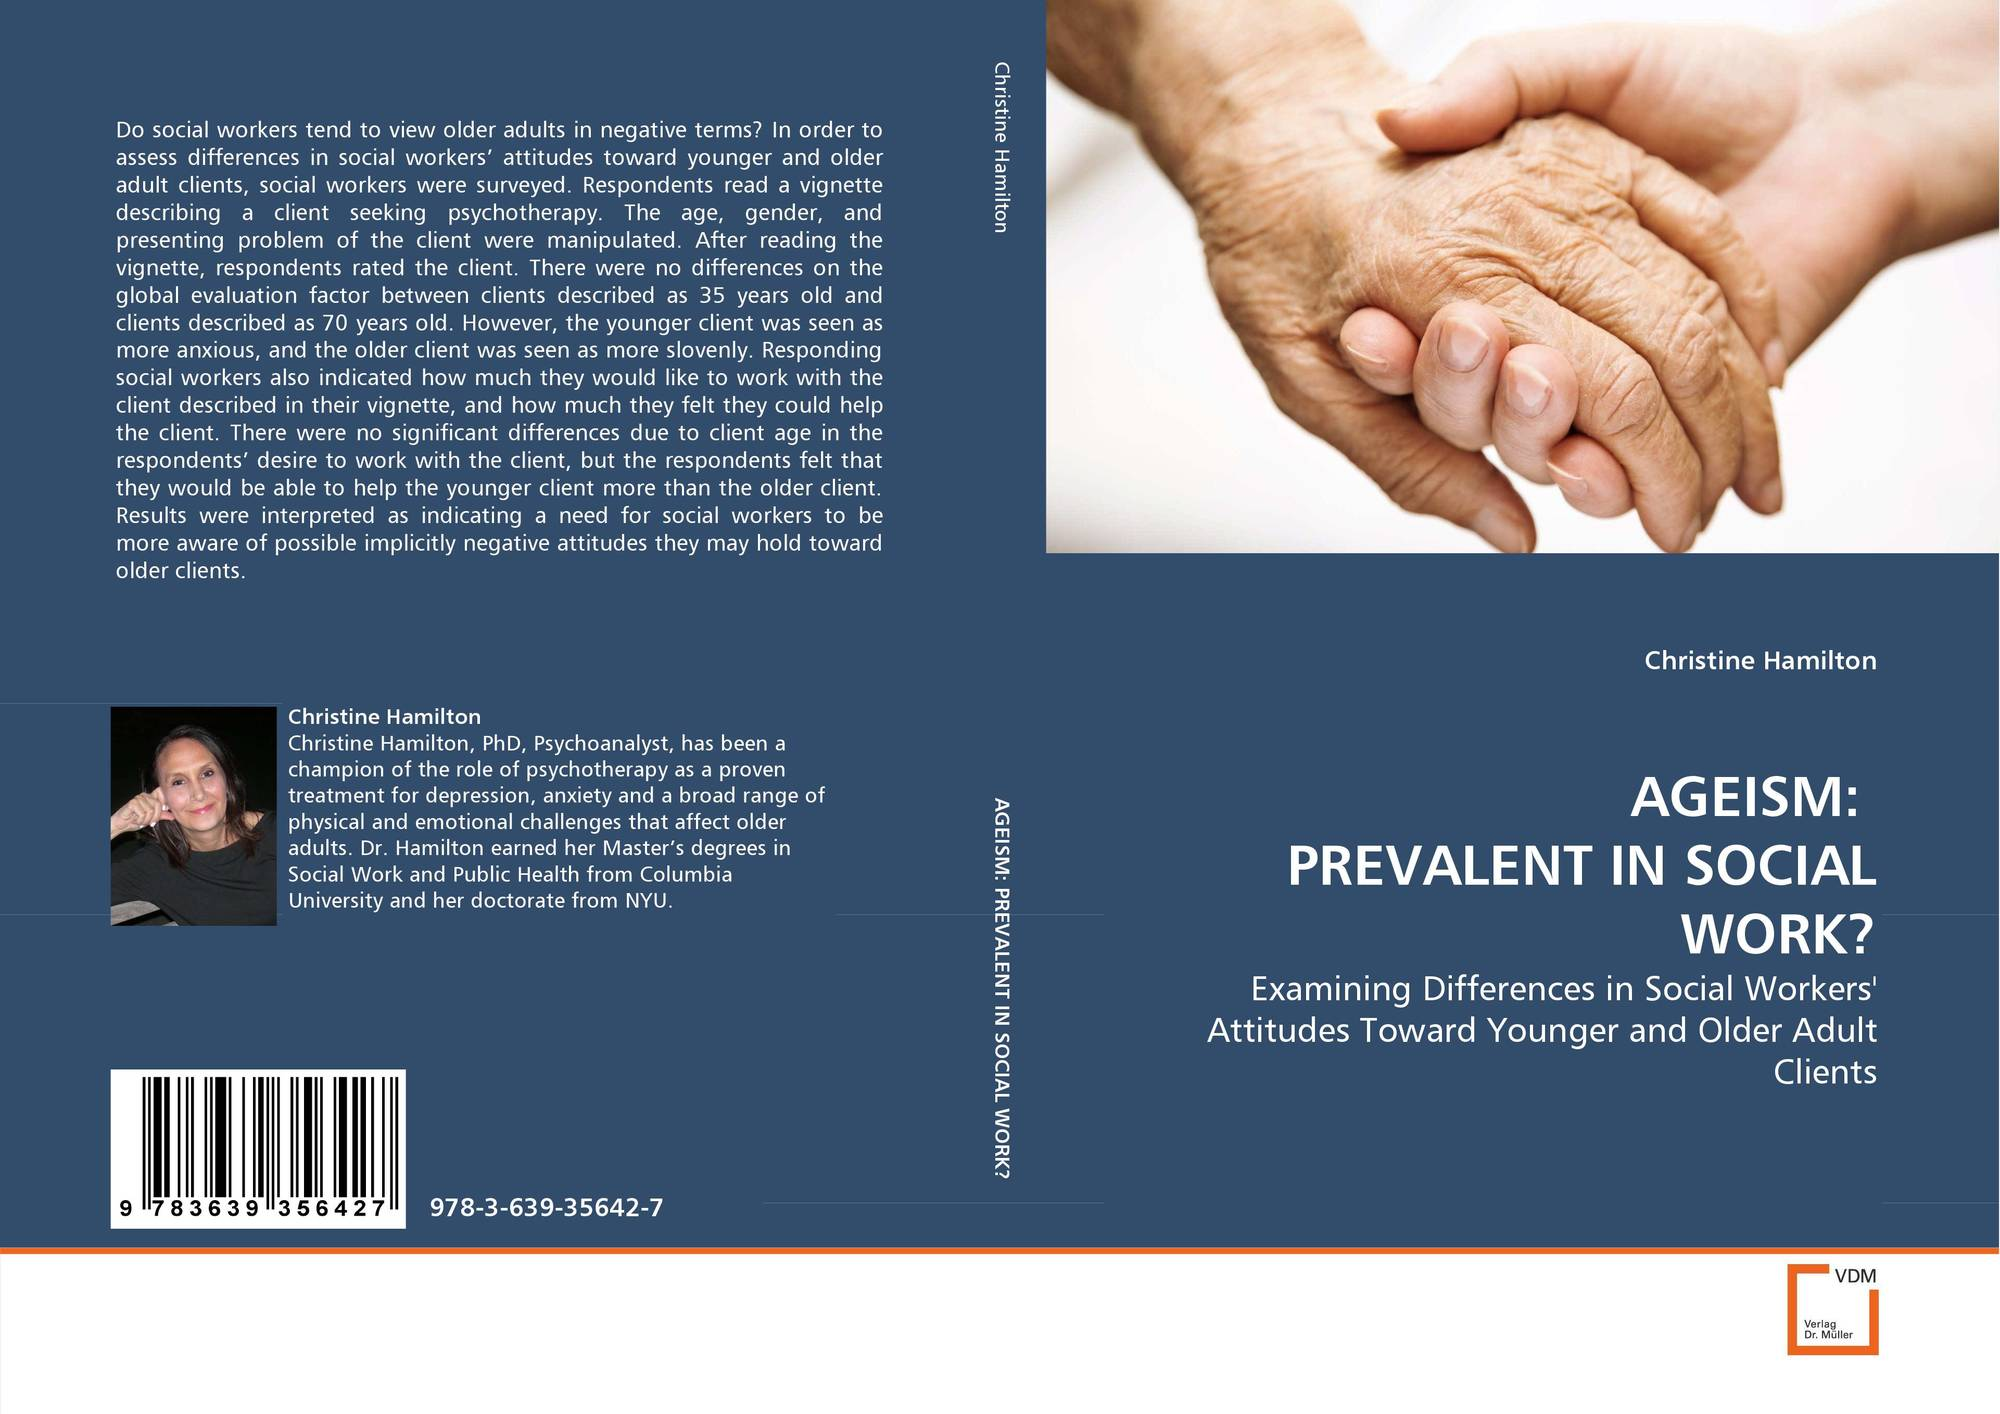 a report on the negative attitudes about aging and senior citizens in our society Fighting ageism geropsychologists but society still isn't embracing the aging population people's positive beliefs about and attitudes toward the elderly.